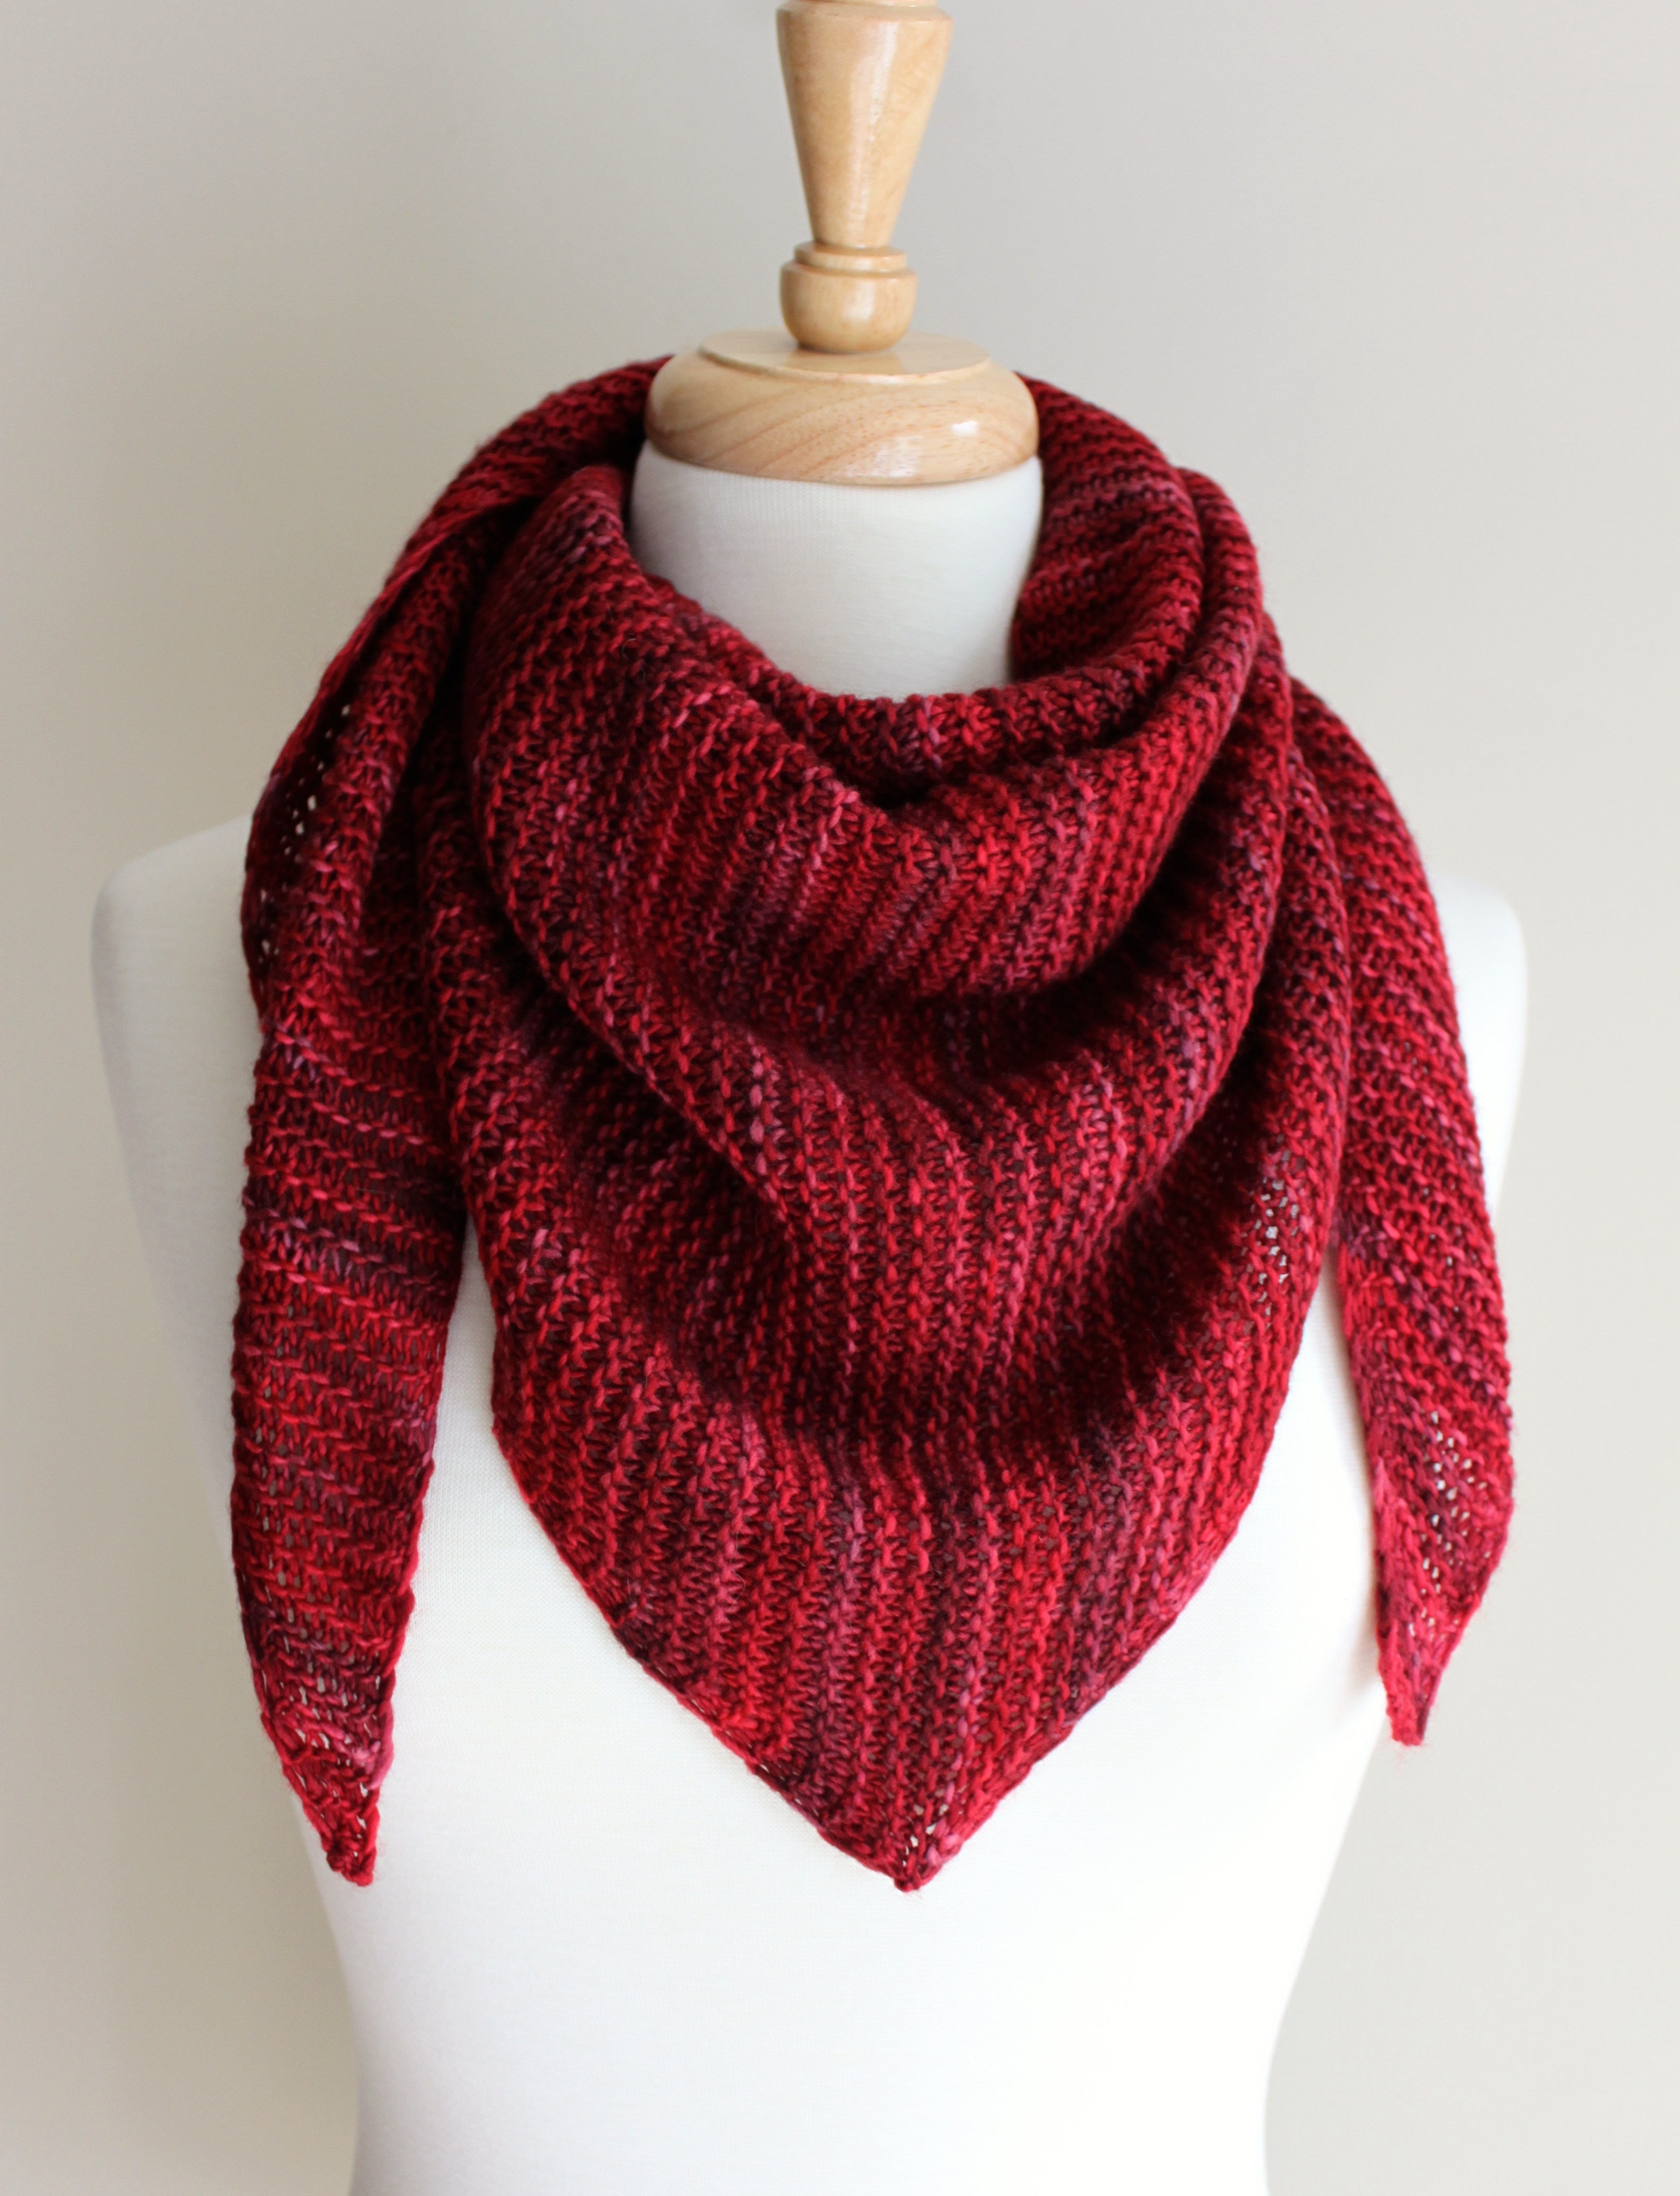 Knitting Patterns Designs Free Knitting Patterns Truly Triangular Scarf Leah Michelle Designs